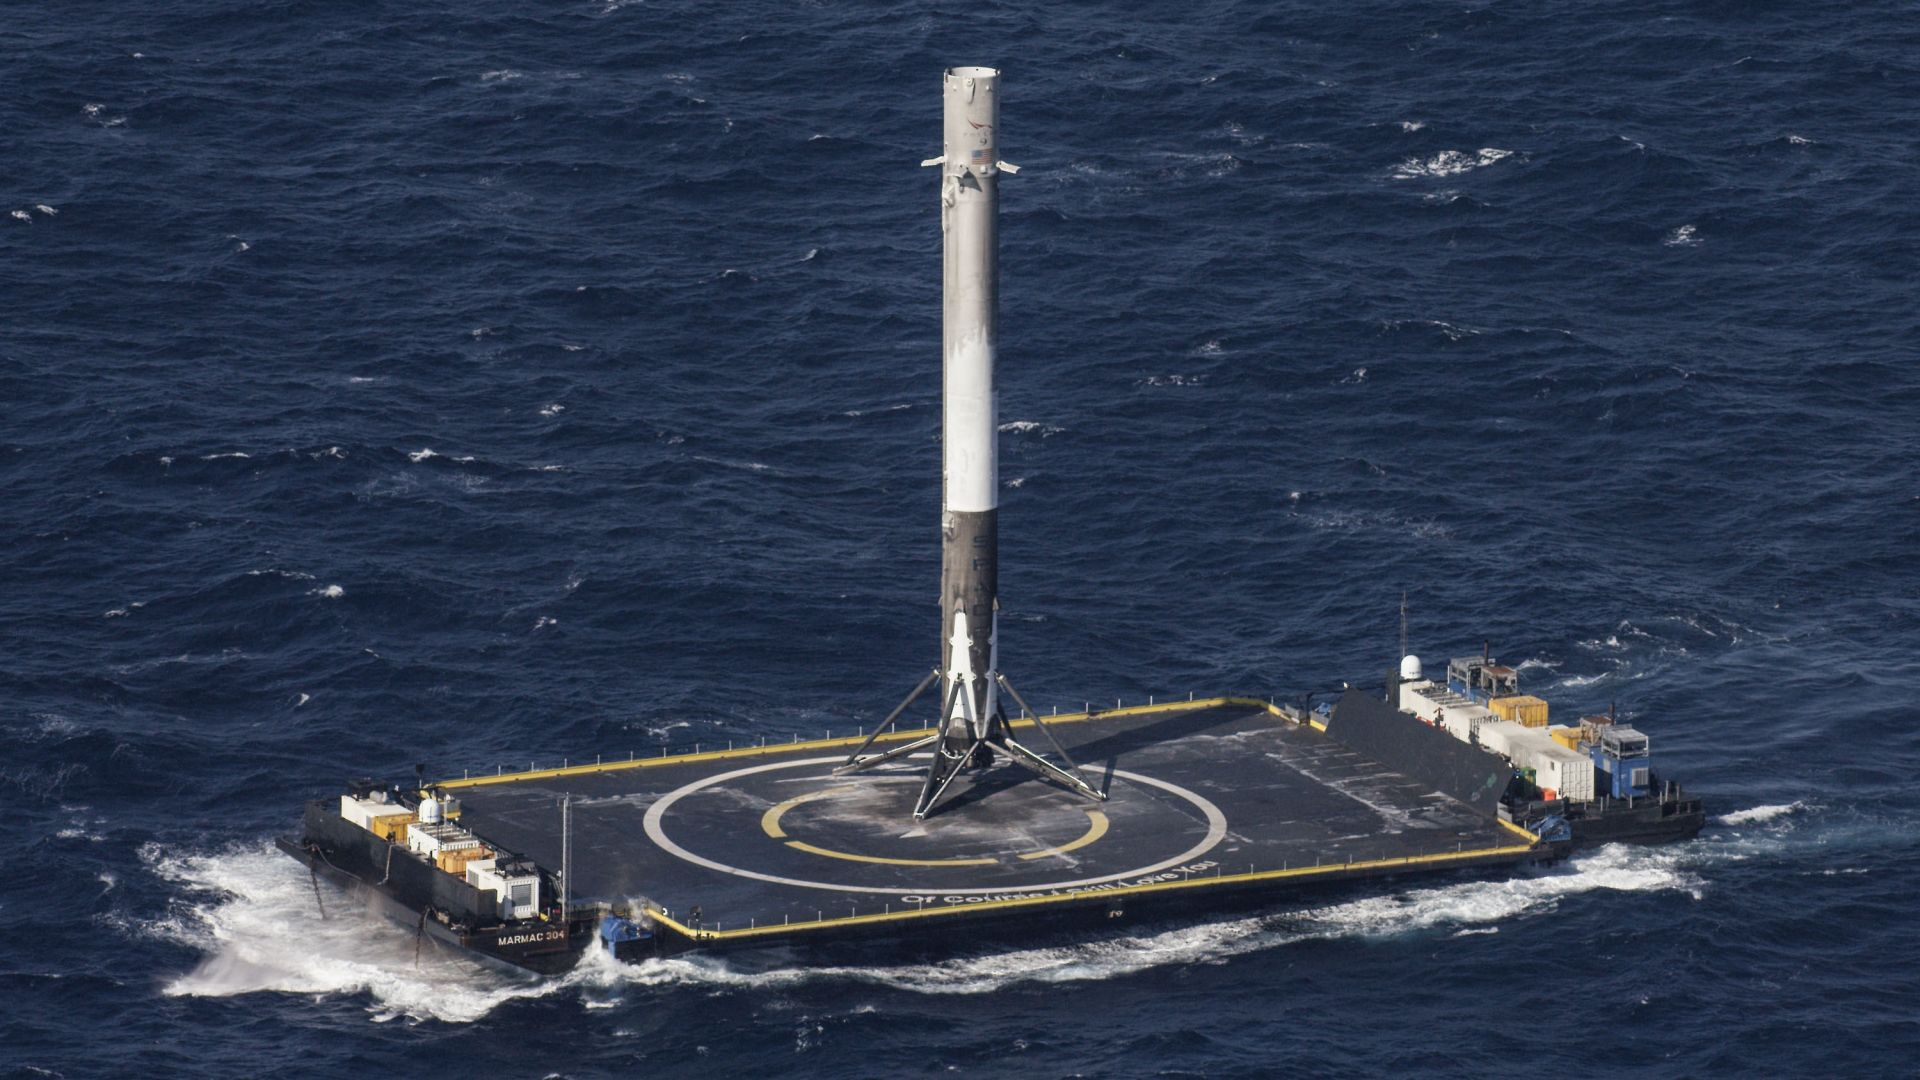 платформа, ракета, SpaceX, ship, sea, platform, rocket (horizontal)